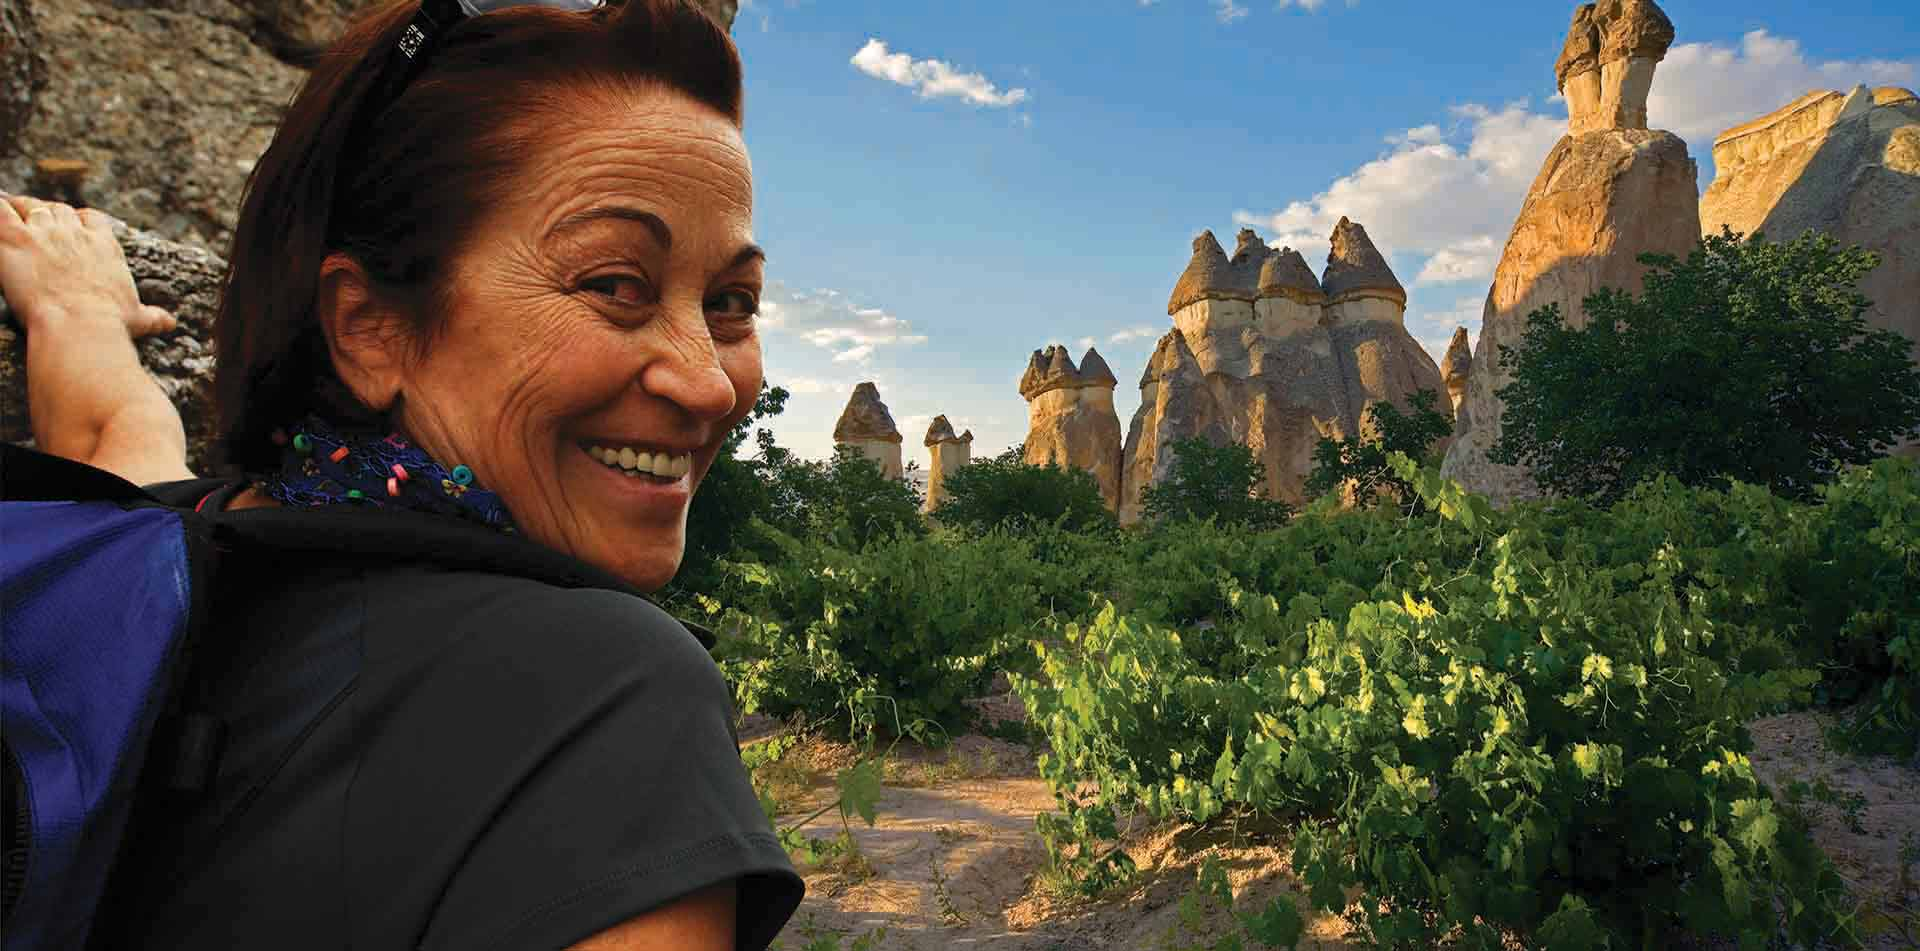 Turkey woman at Goreme National Park and Rock Sites of Cappadocia stone spires and chimneys - luxury vacation destinations